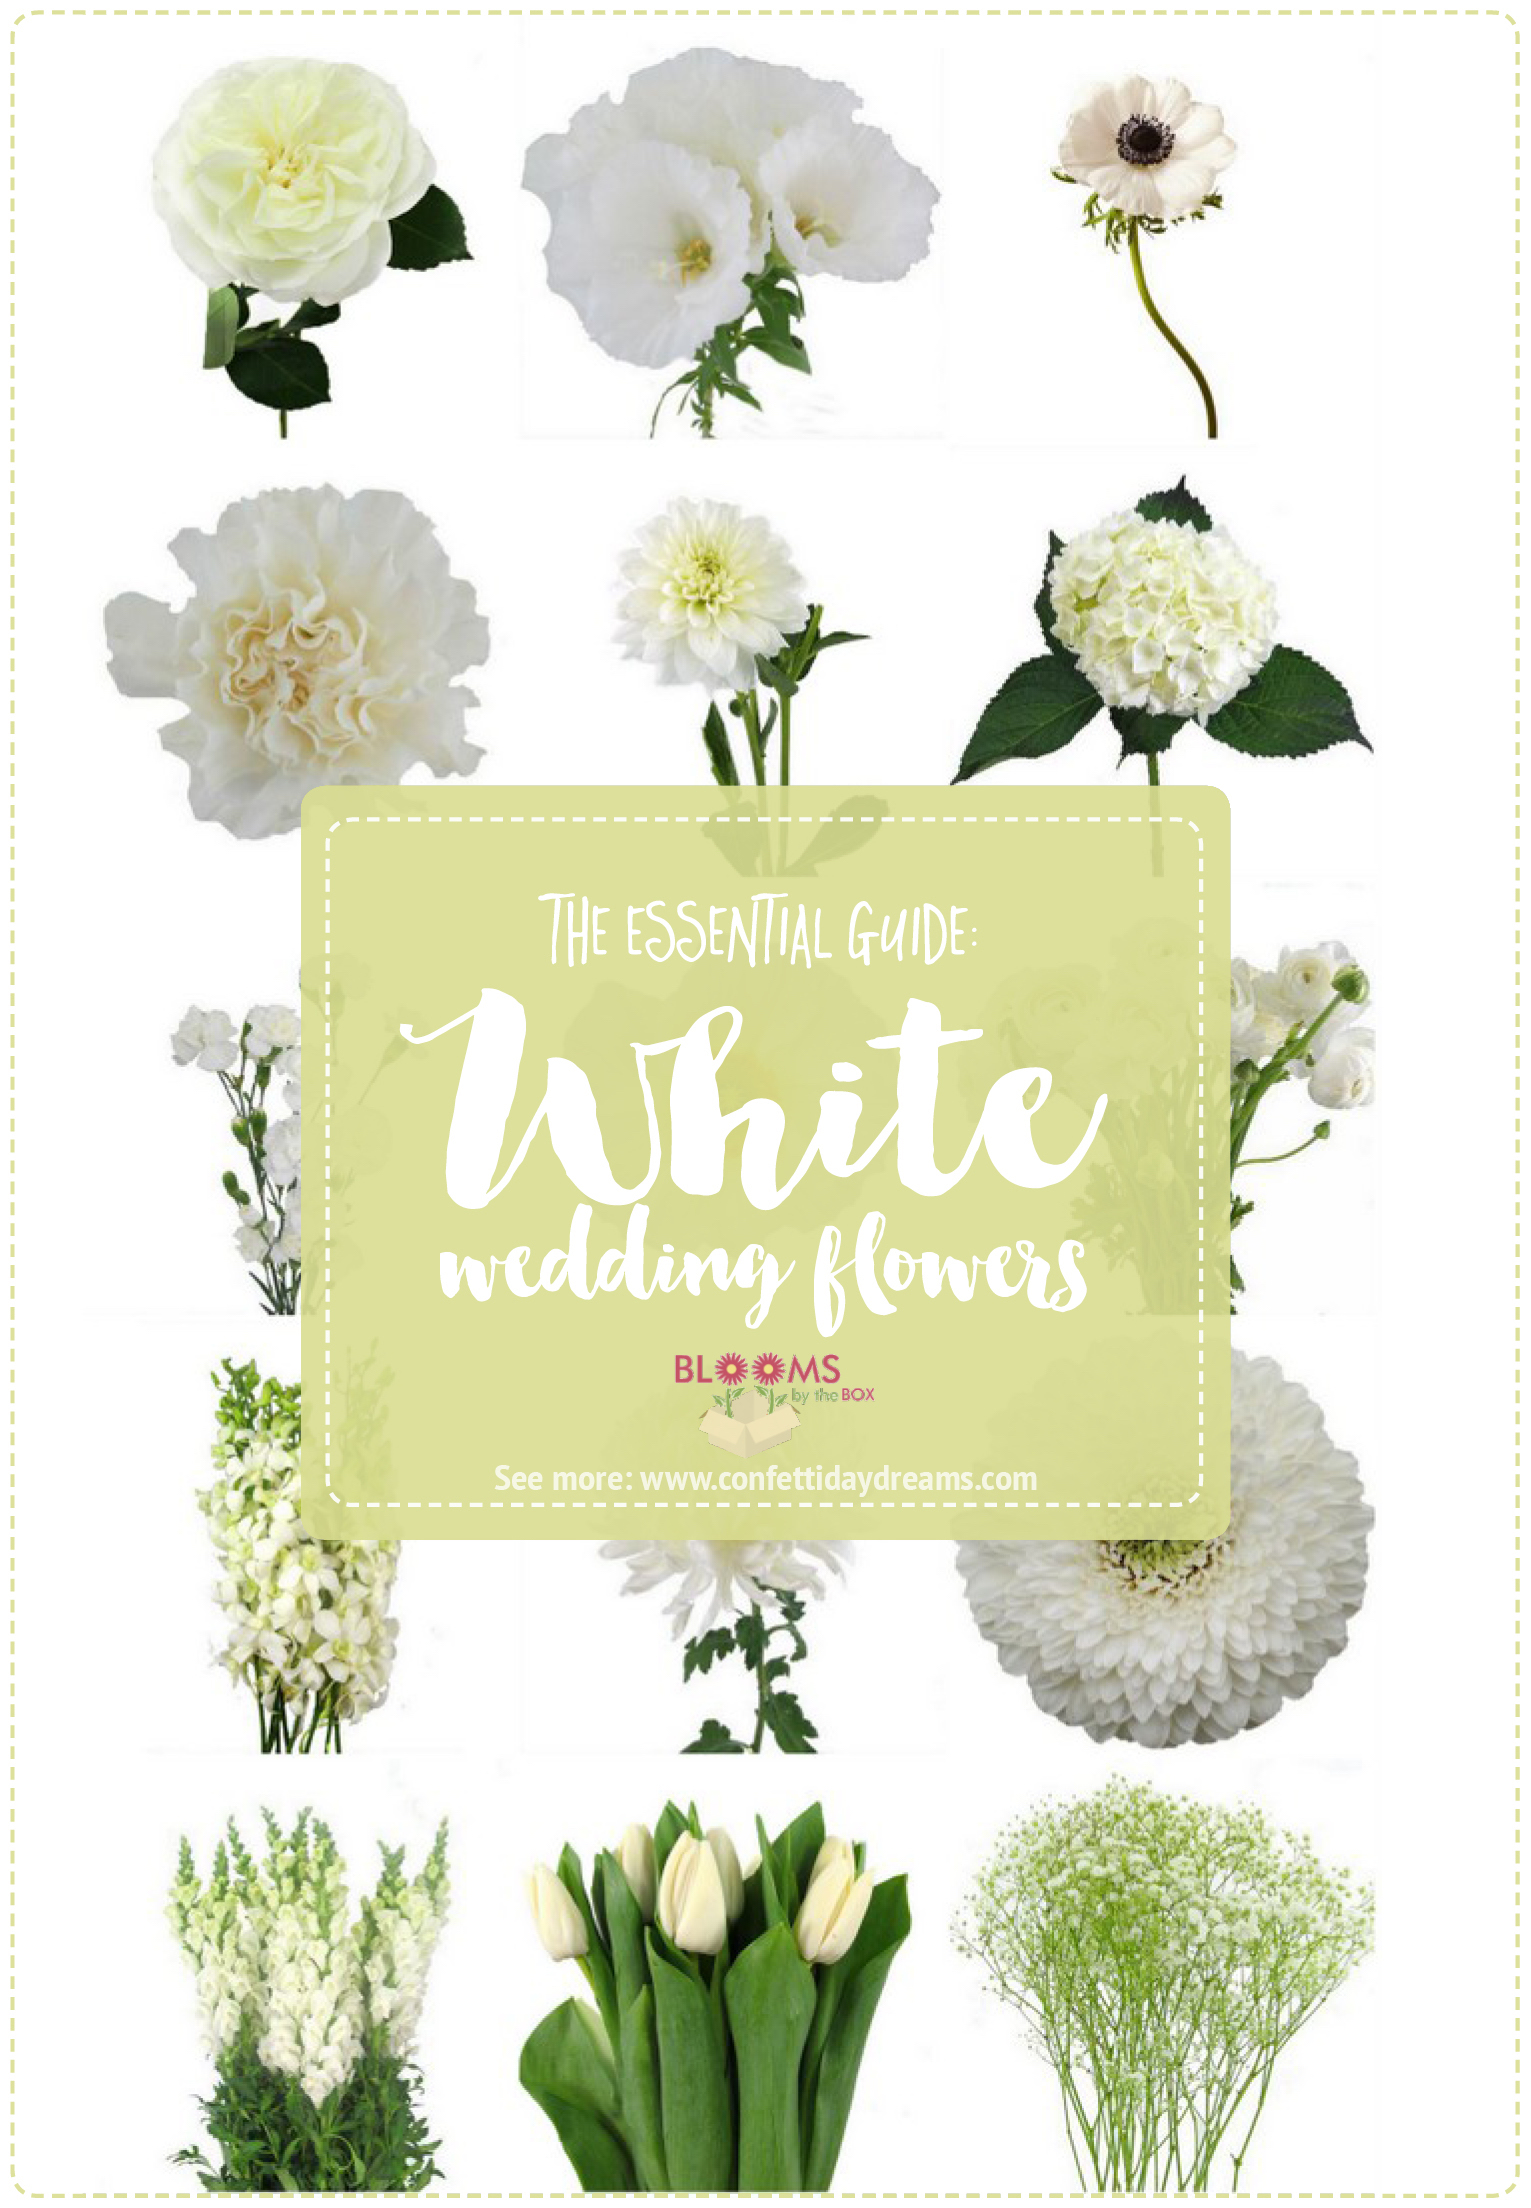 White Flowers Names Wedding Types